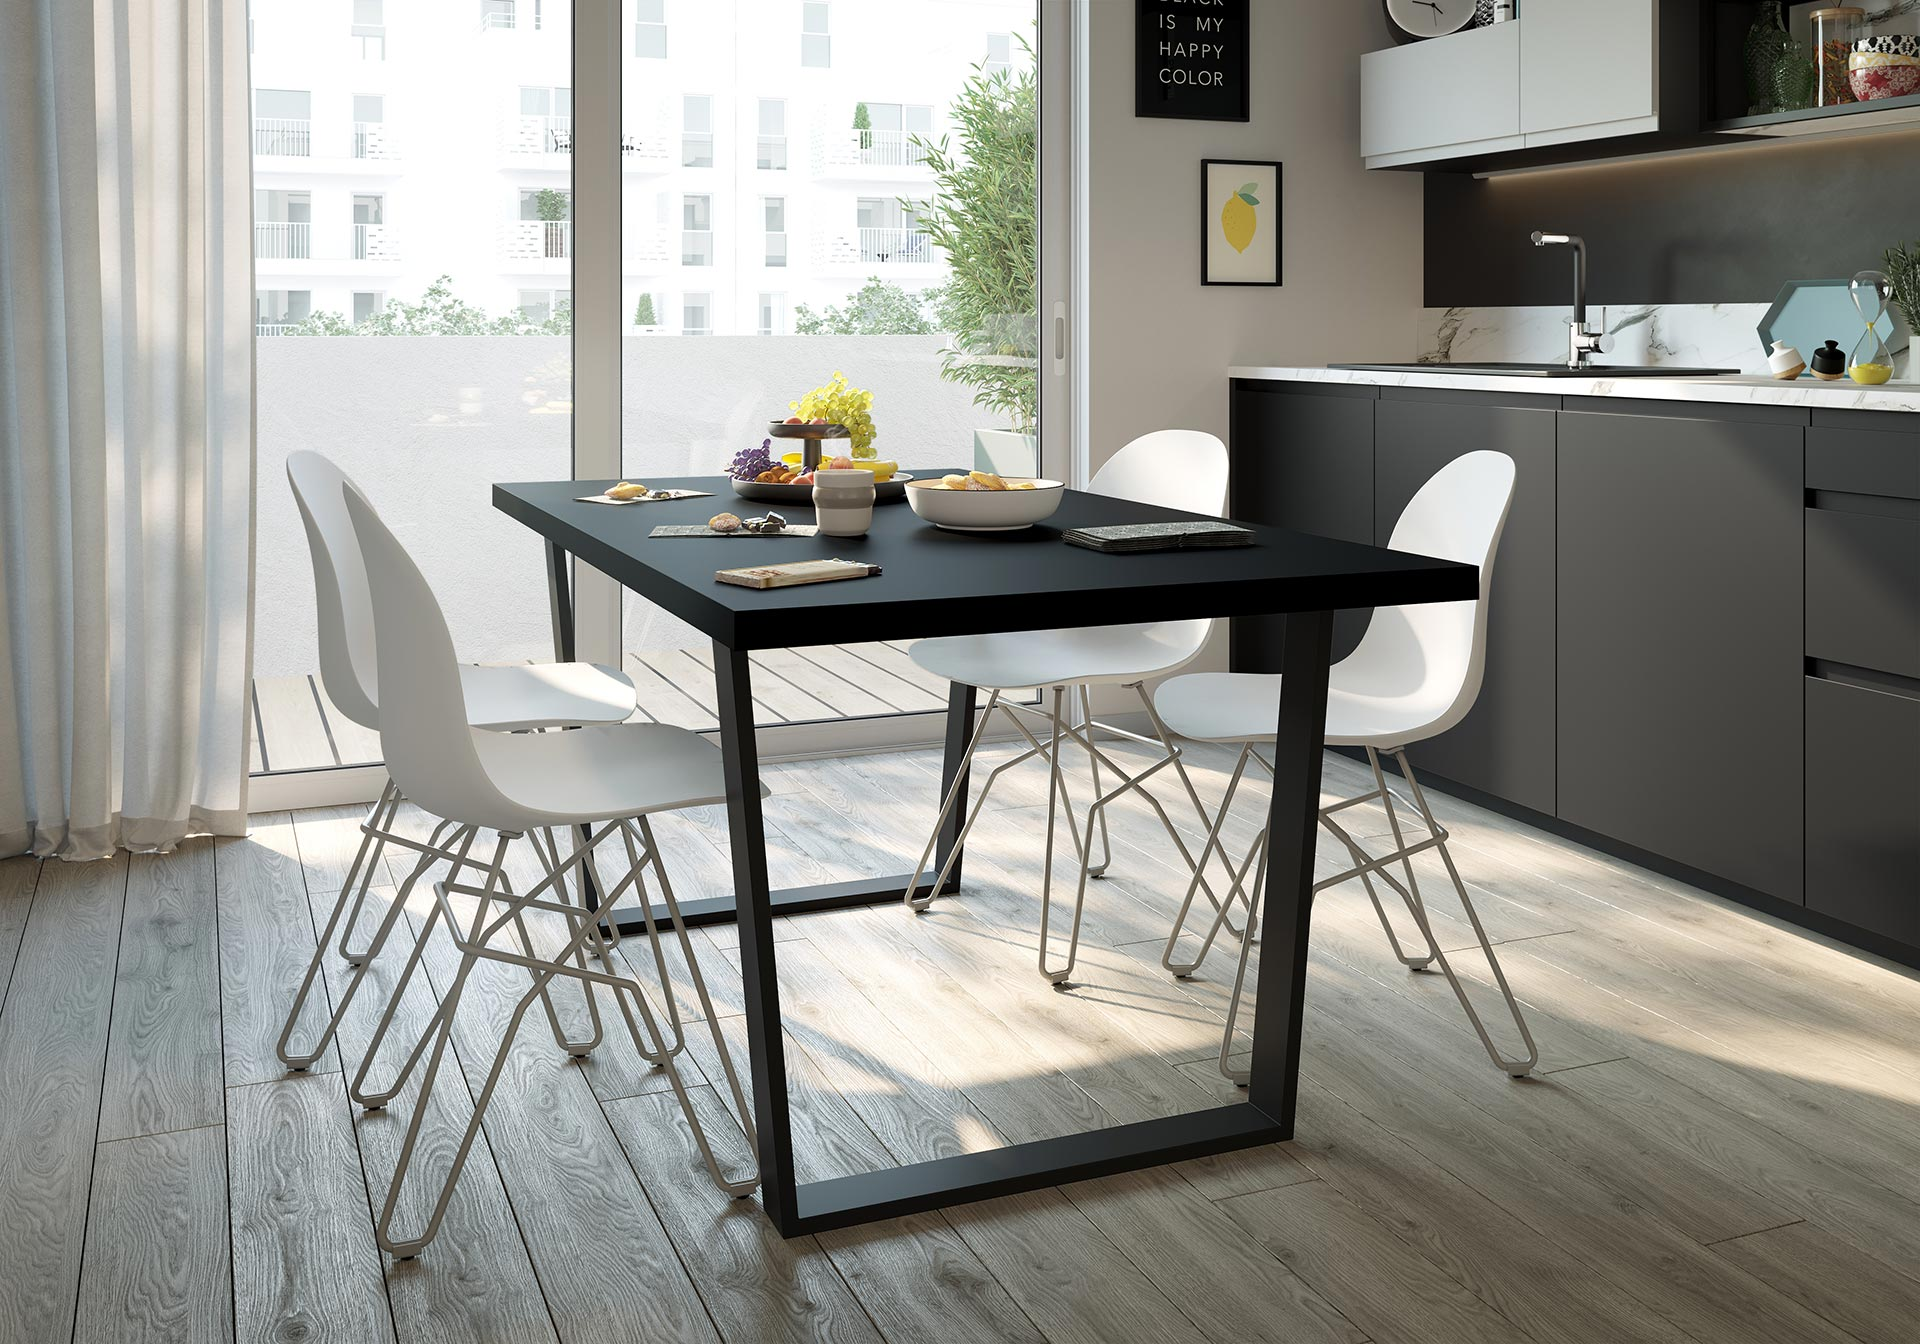 3D Visualization of kitchen furniture - Ad project